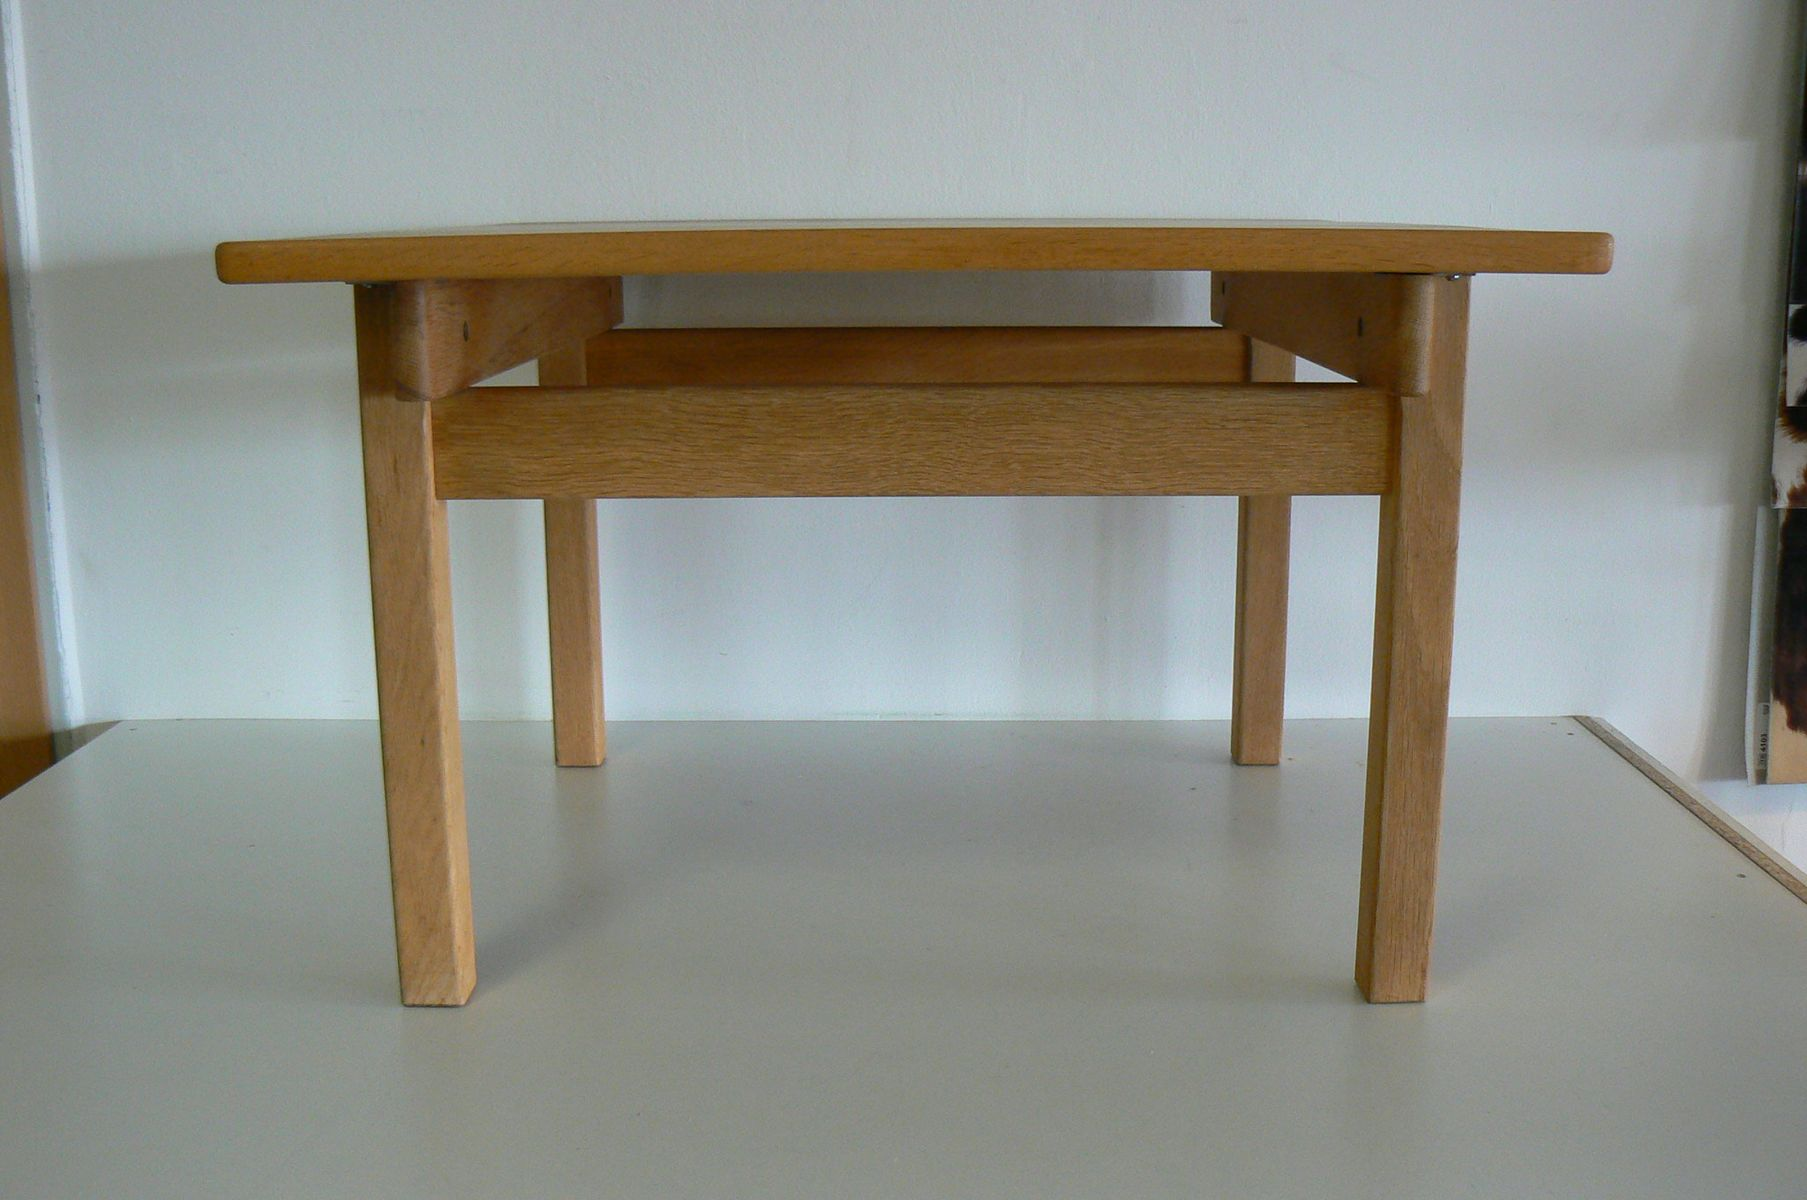 Oak square dining table by kurt ostervig for kp mbler 1965 for price 132100 regular price 140600 watchthetrailerfo